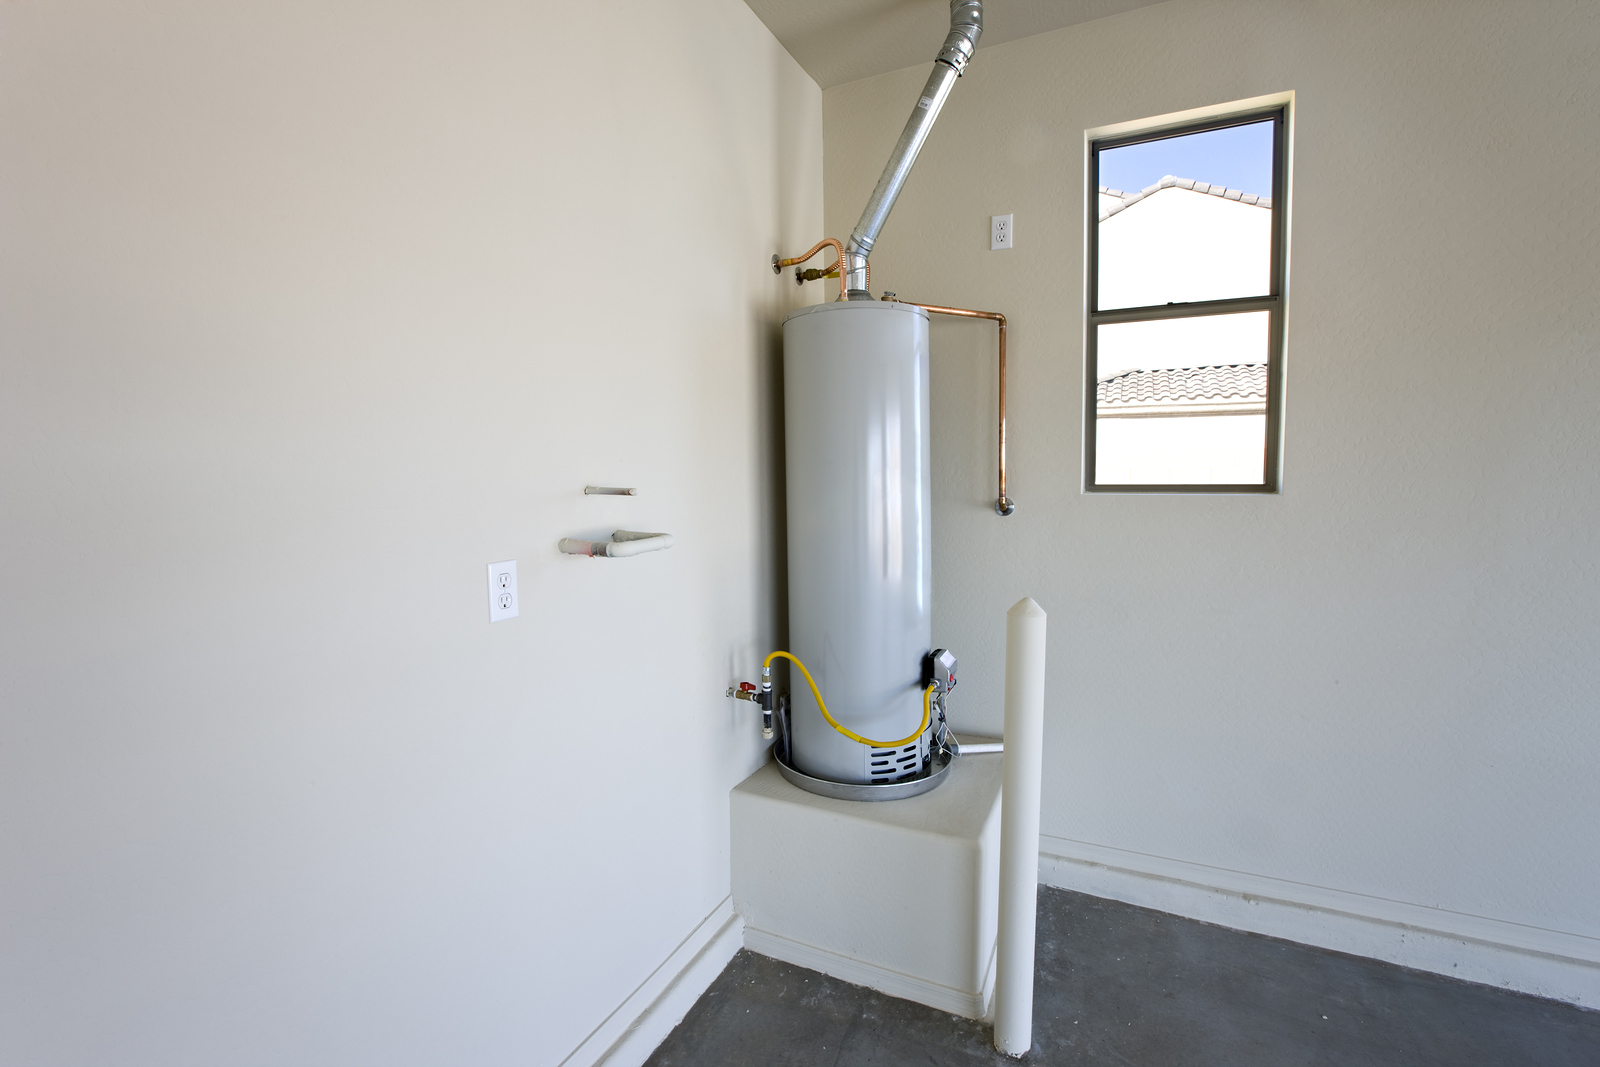 Problems With Your Water Heater? Our Professionals Can Help You!